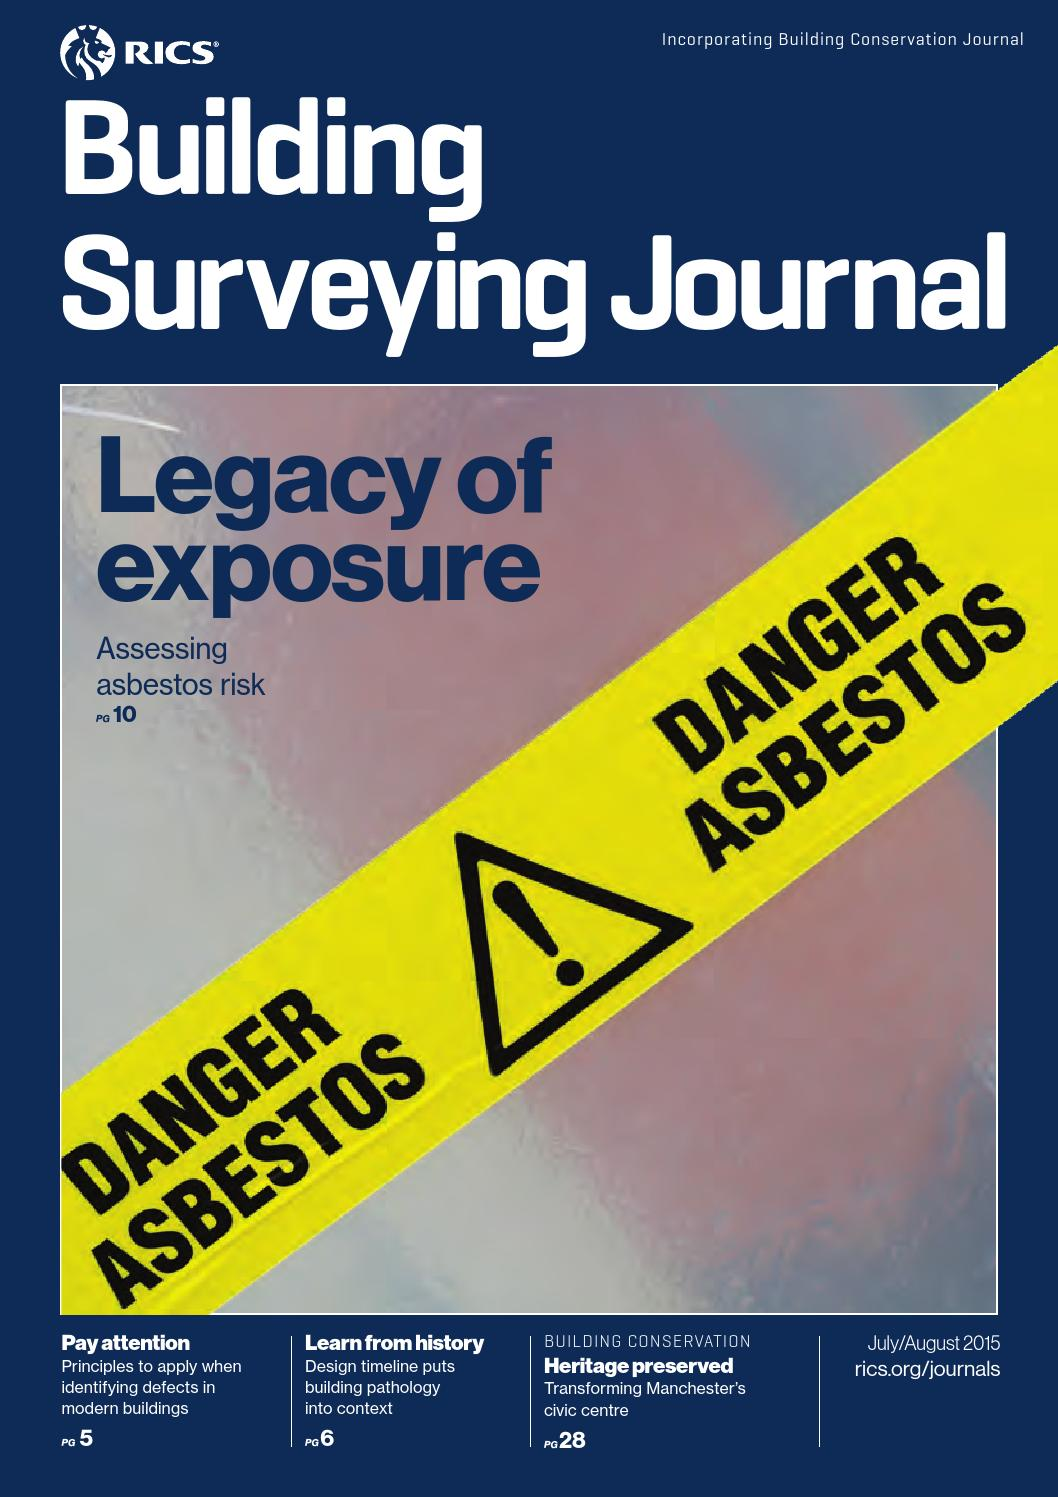 building surveying journal july august 2015 by rics issuu - Asbestos Surveyor Cover Letter